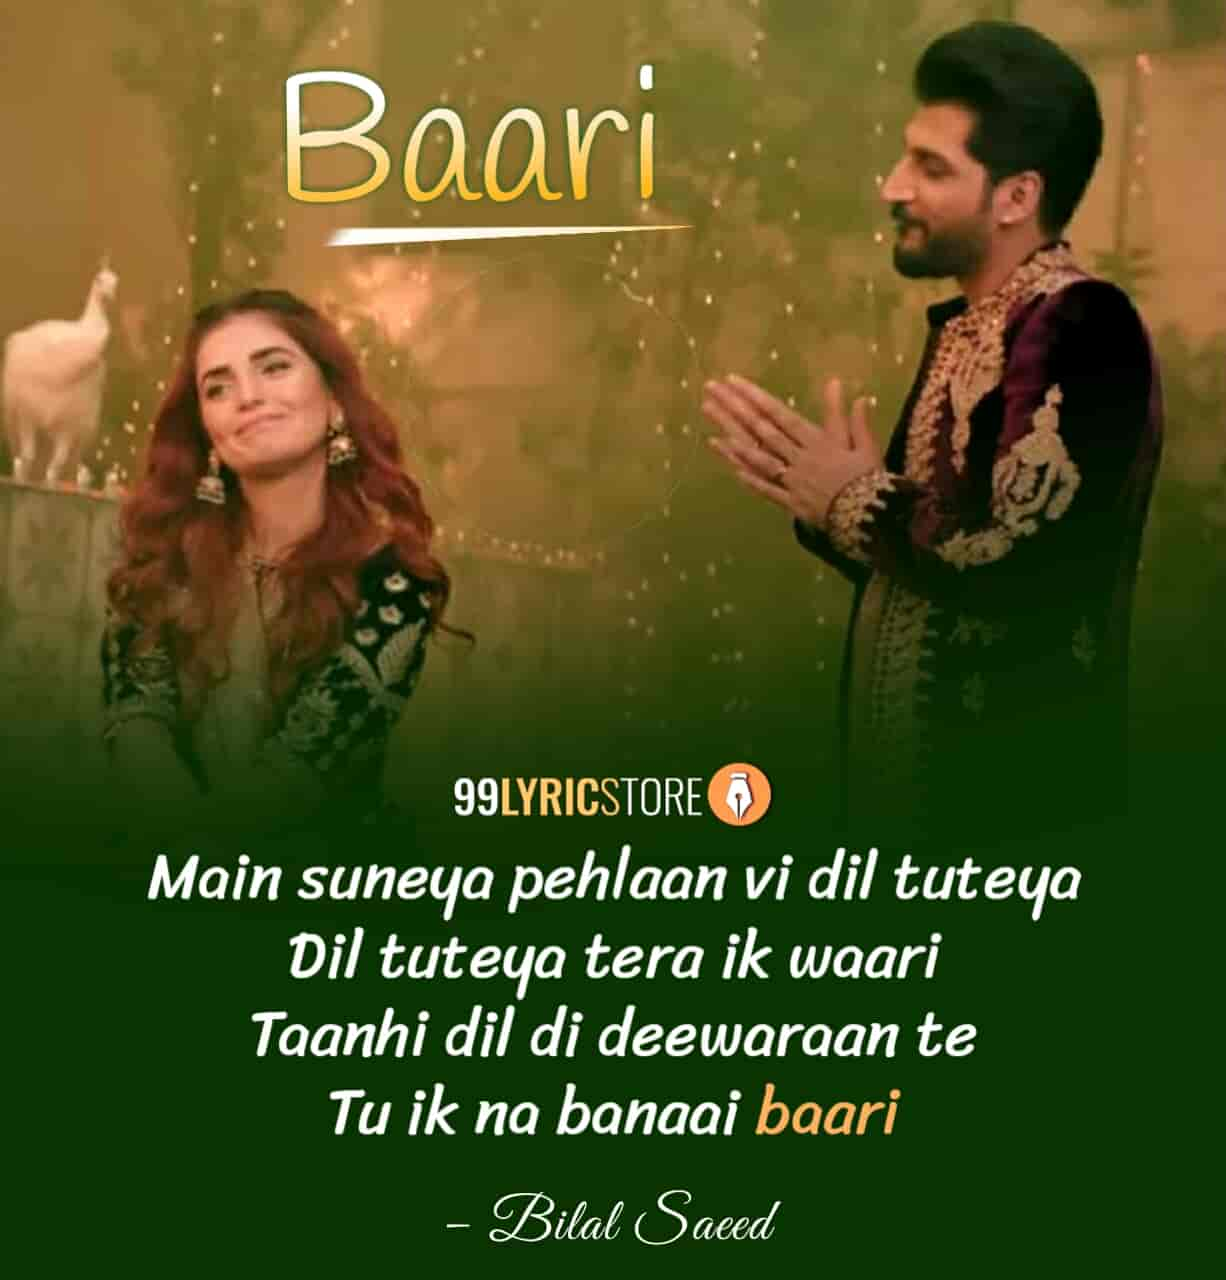 Baari Punjabi Song Images By Bilal Saeed and Momina Munstehsan